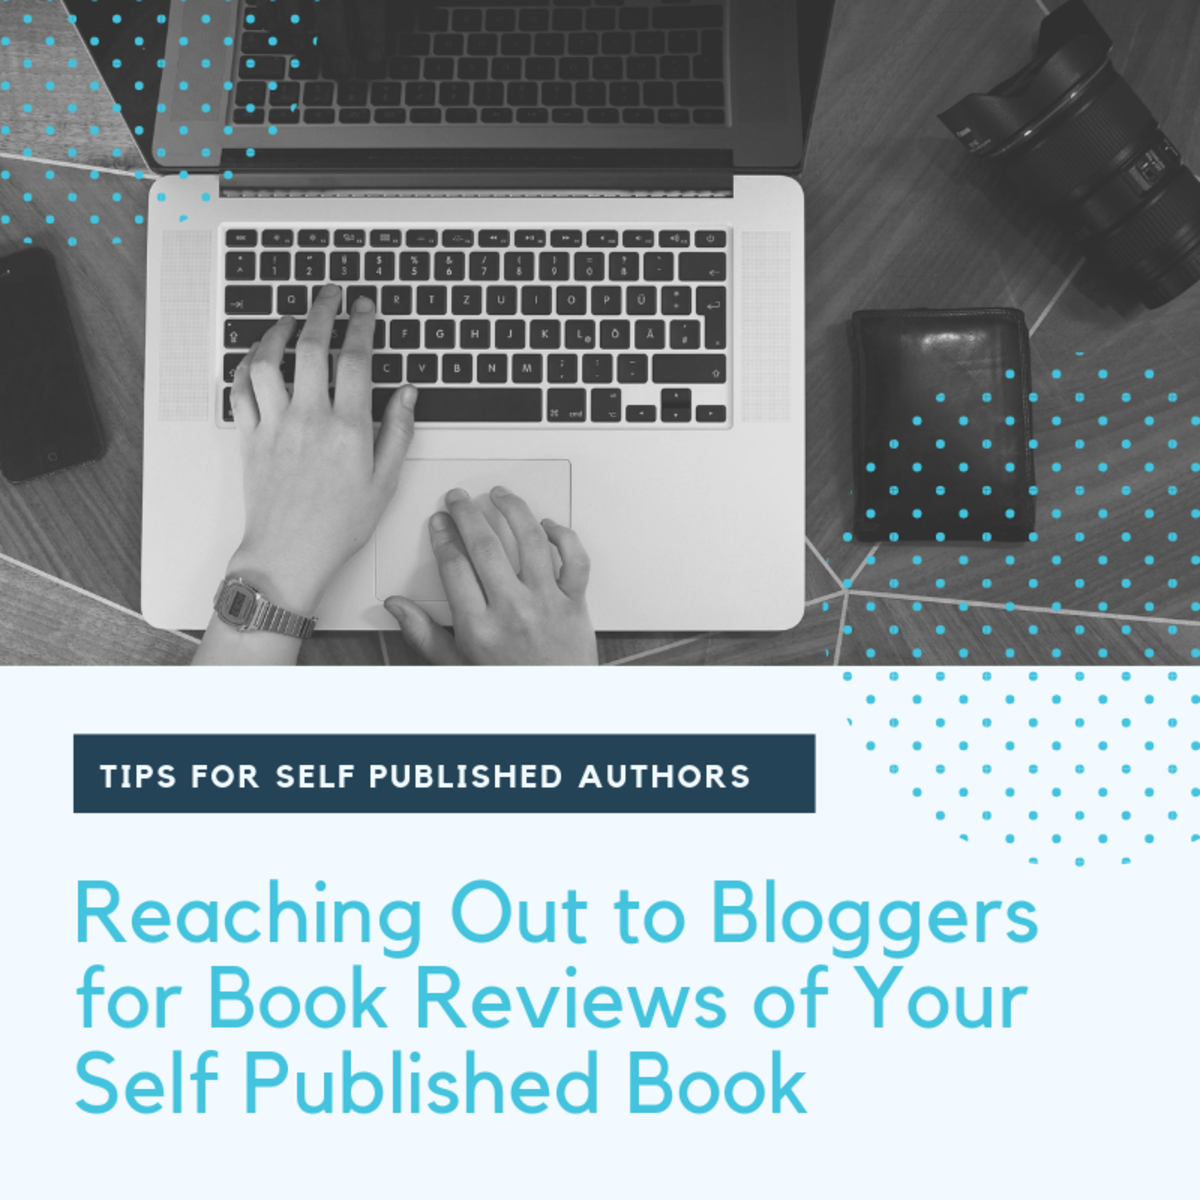 Reaching Out to Bloggers